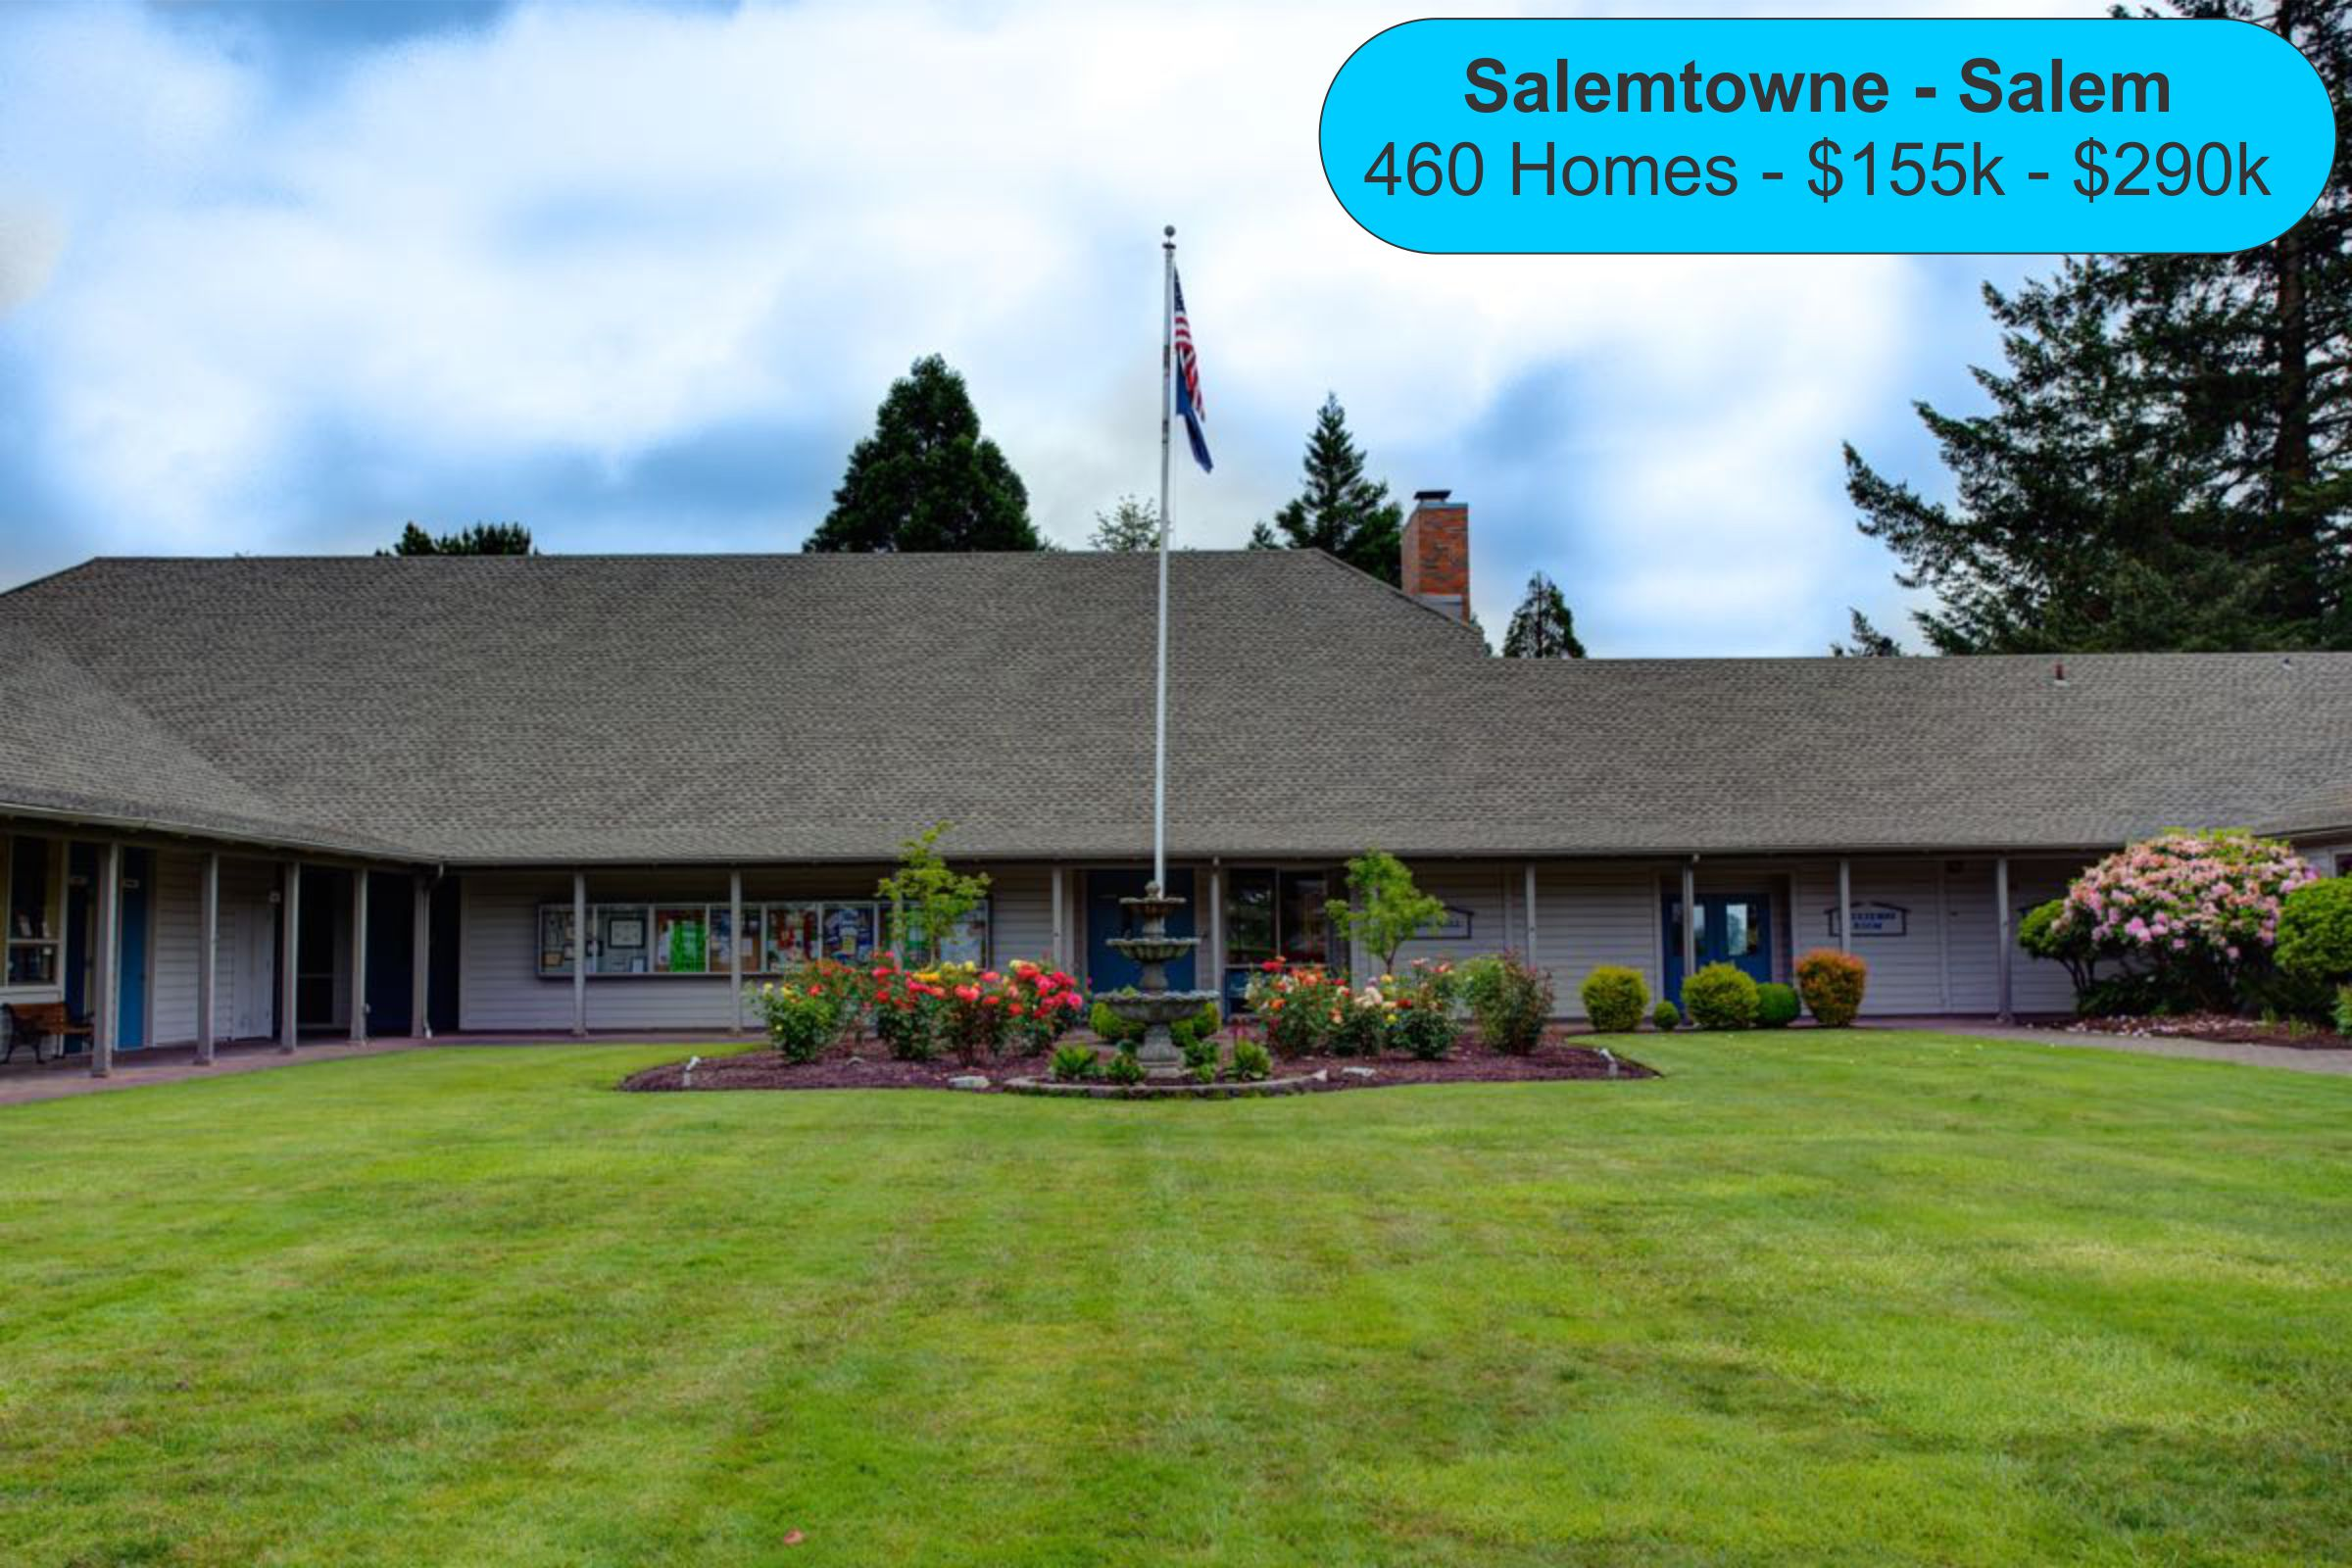 Homes for sale in Salemtowne